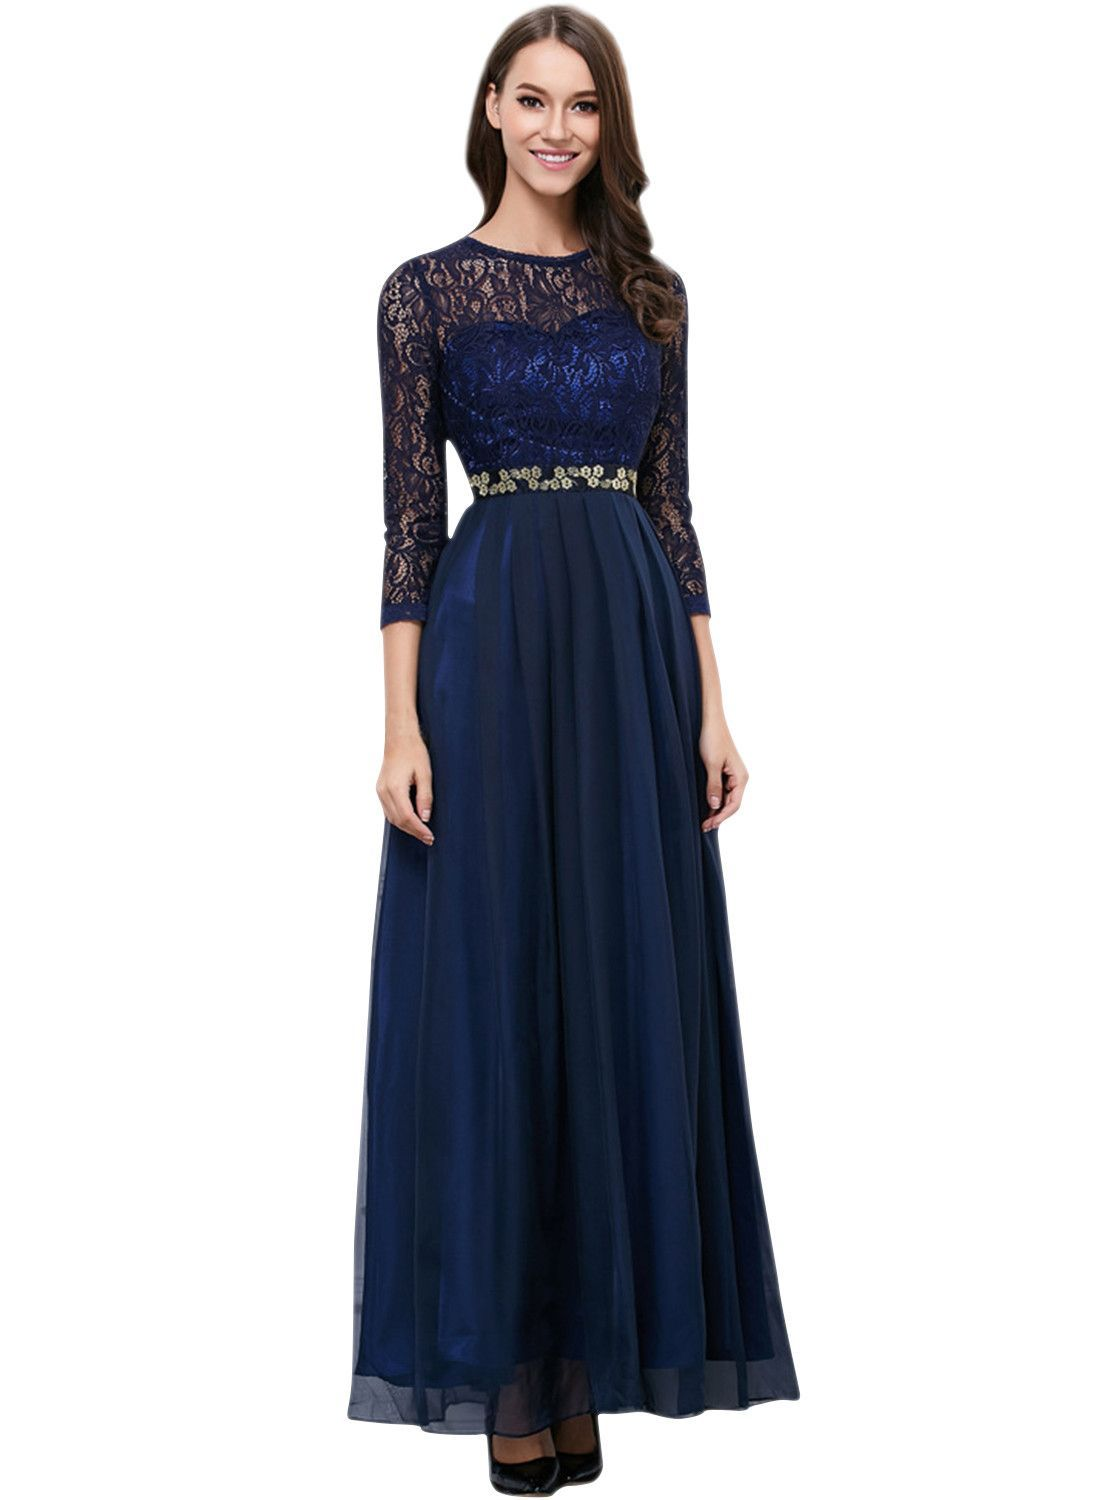 Floral lace paneled round neck sleeve prom dress products